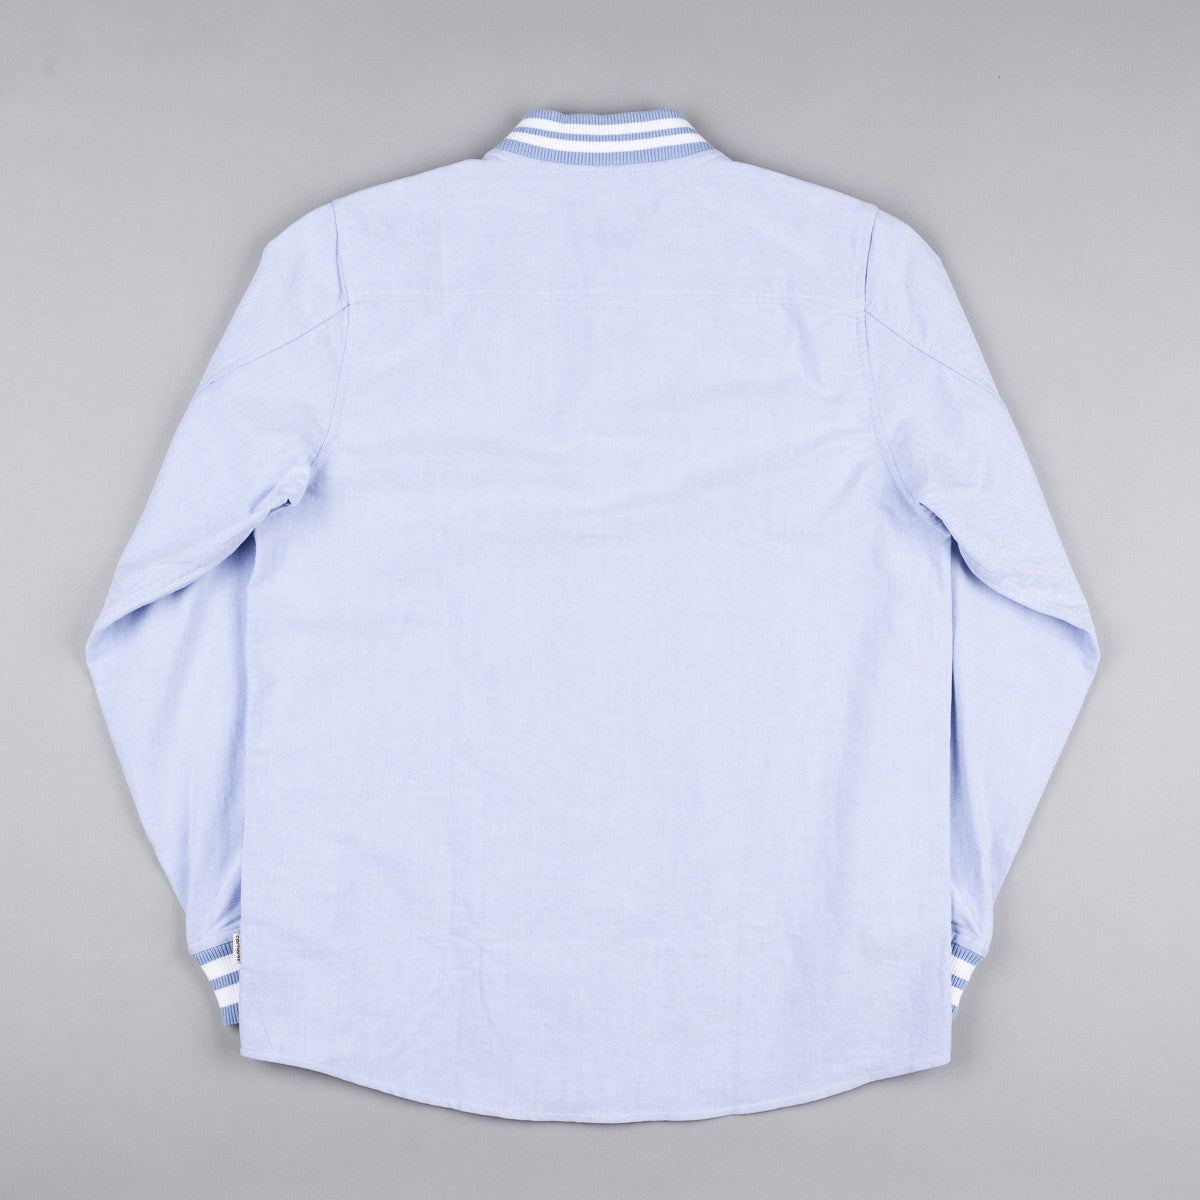 Carhartt Atlanta Long Sleeve Shirt - Bleach